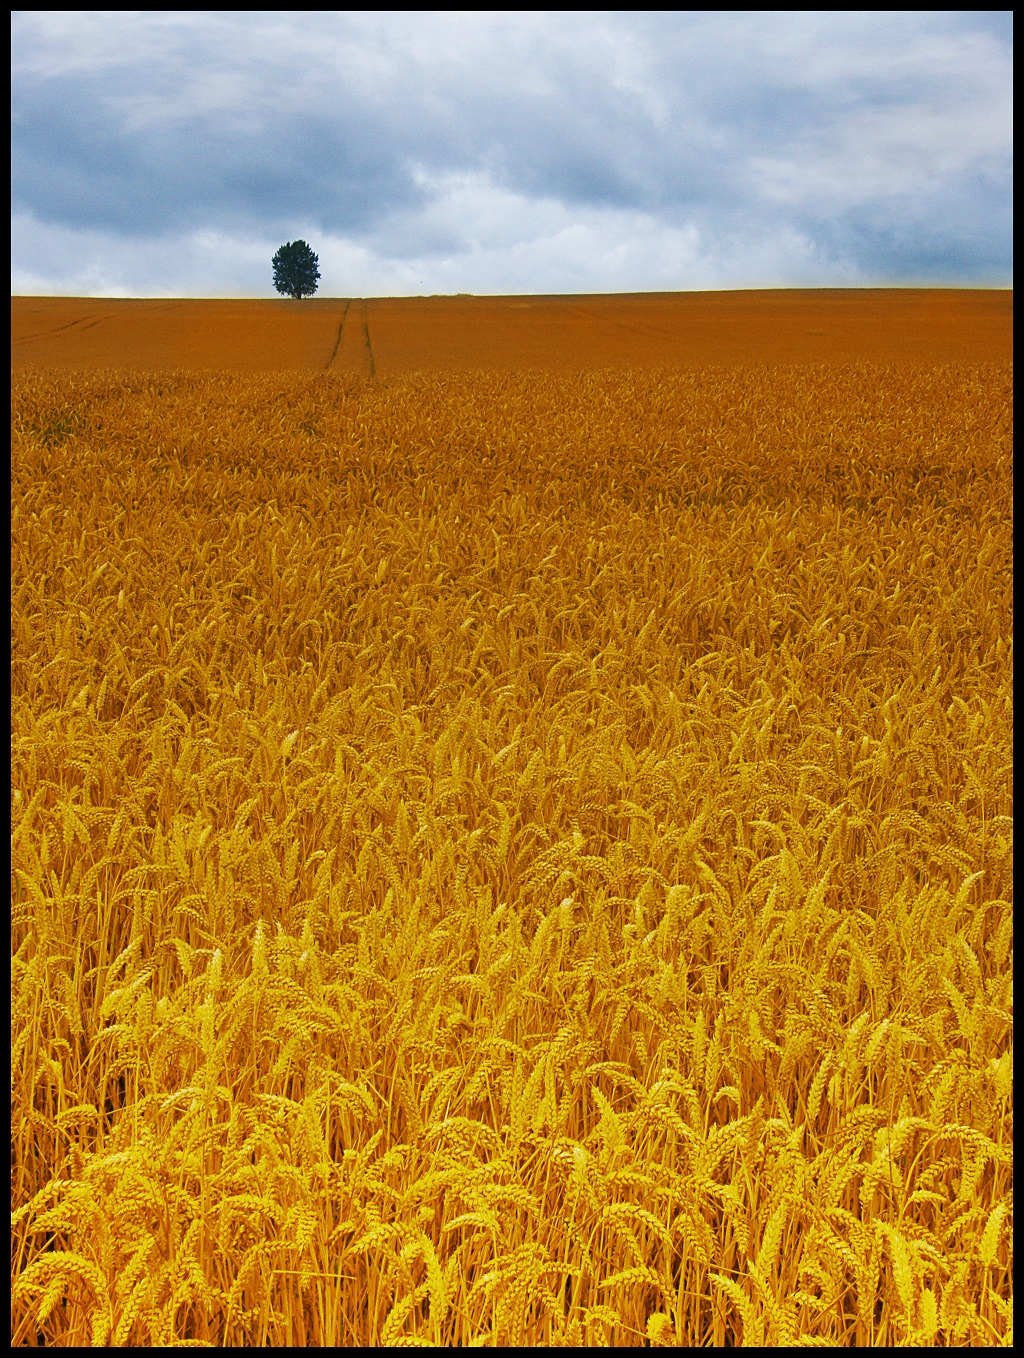 Lone tree in the midst of cornfields.